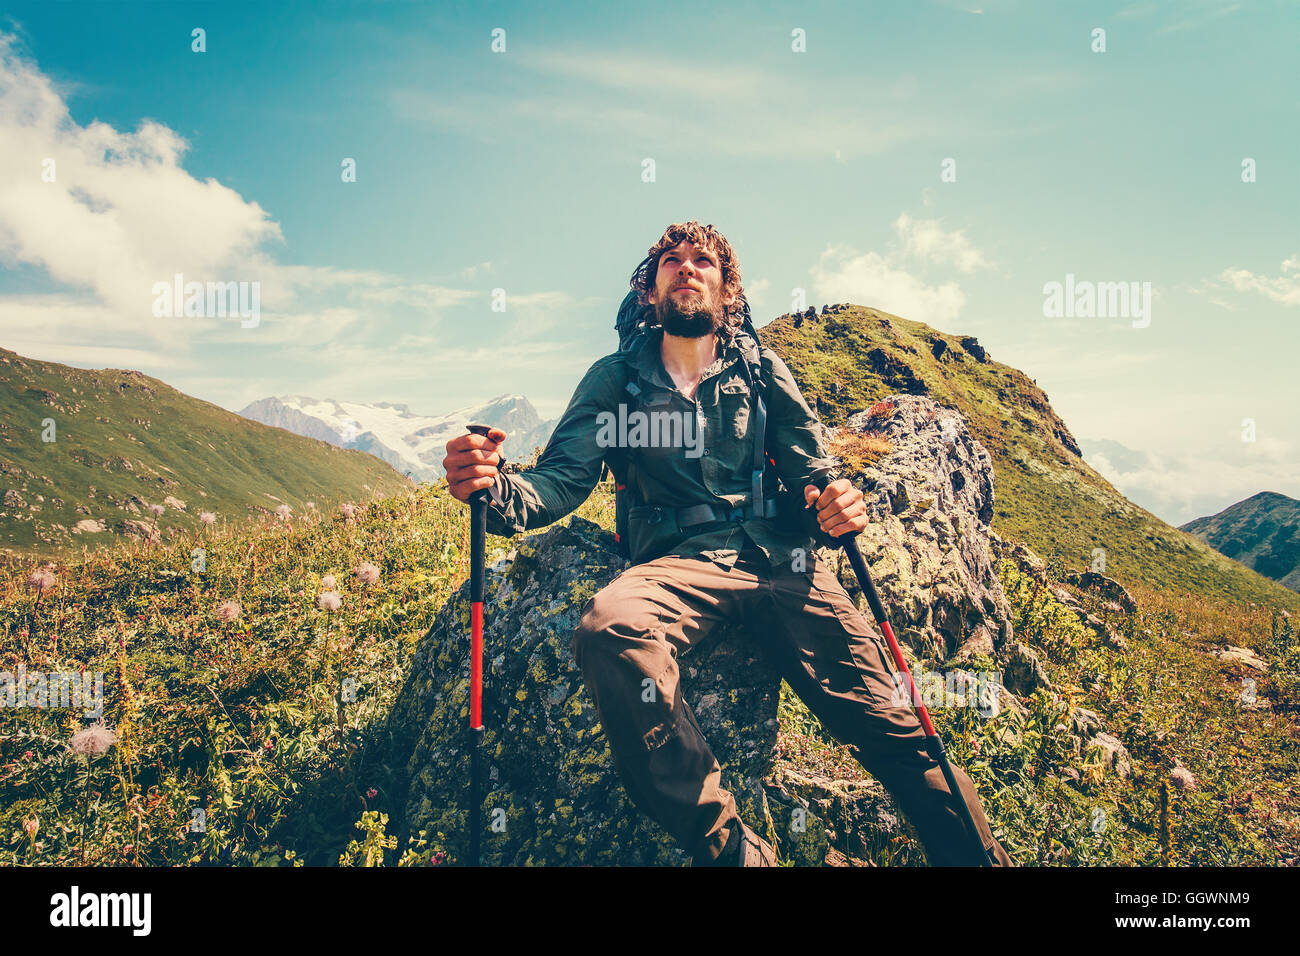 Man backpacker relaxing with trekking poles Travel Lifestyle concept mountains landscape on background adventure - Stock Image